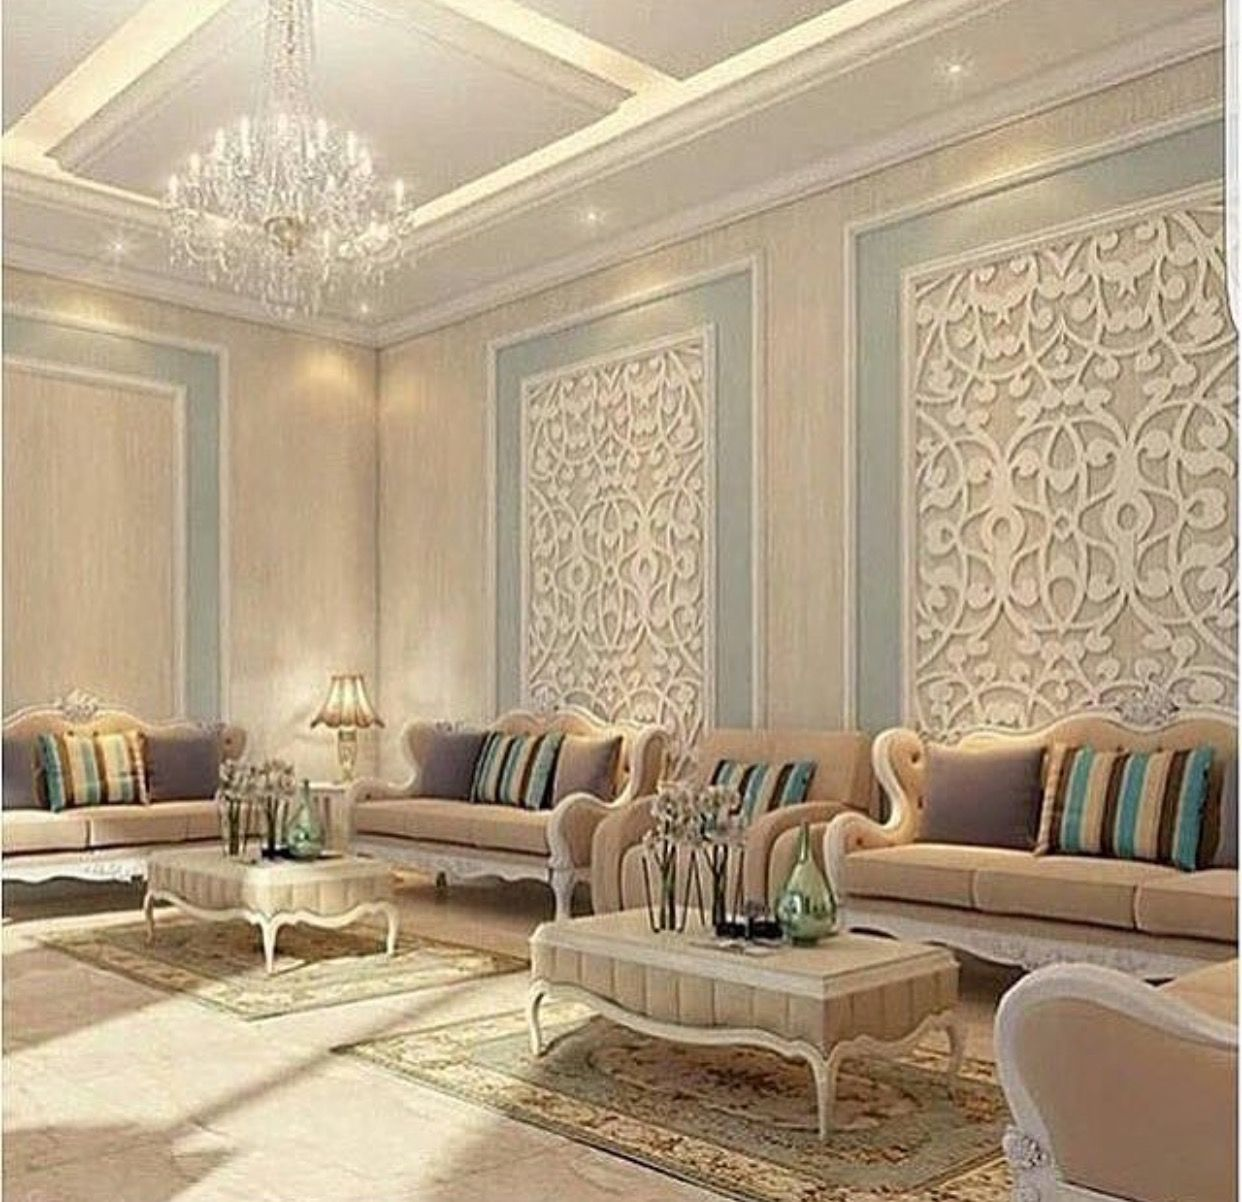 Good Living Room Designs Magnificent This Aould Be Really Good For A Formal Living Room Designthe 2018